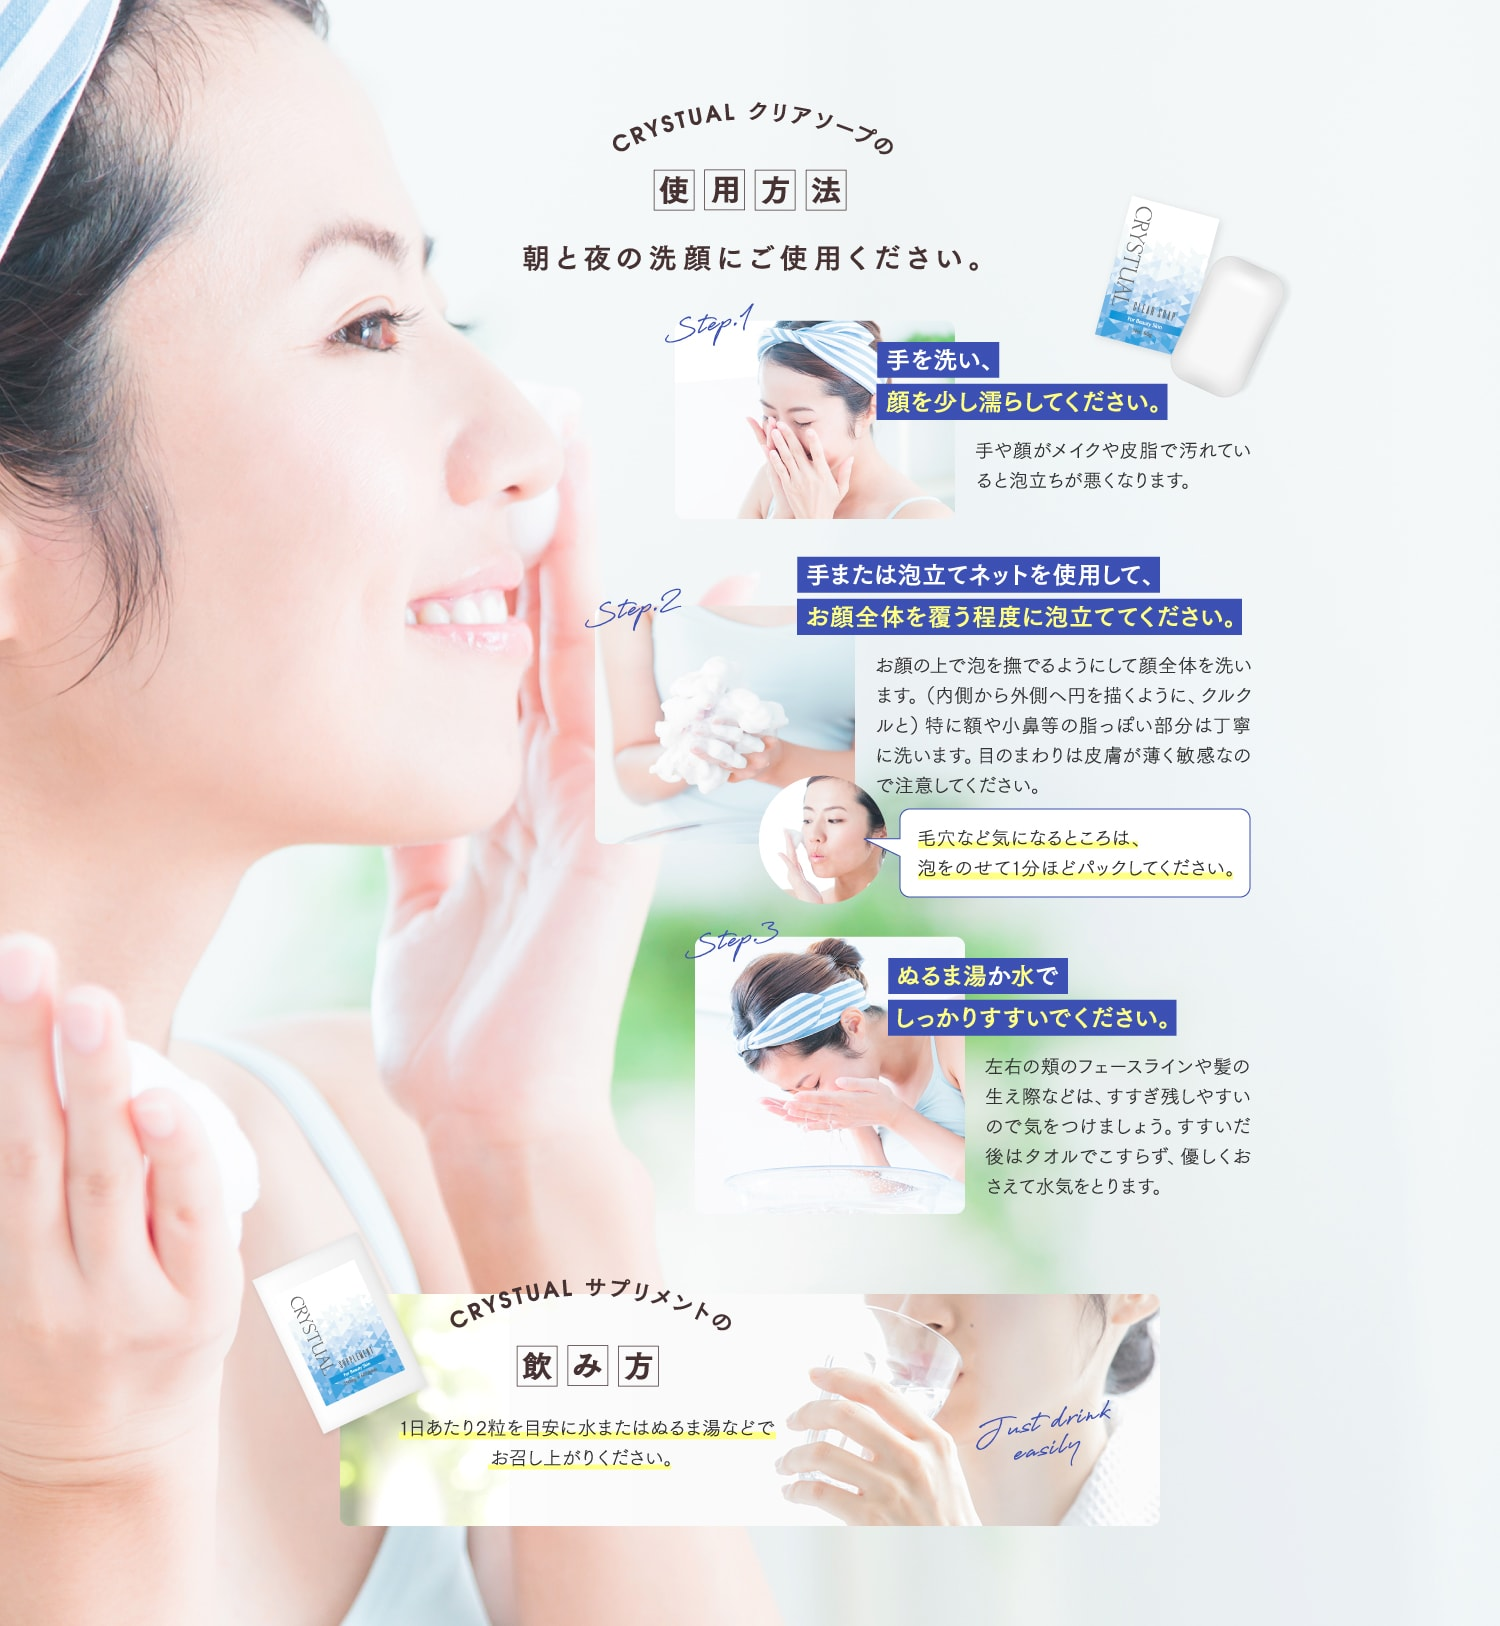 CRYSTUAL CLEAR SOAP・CRYSTUAL SUPPLEMENT CRYSUTUAL クリアソープの使用方法